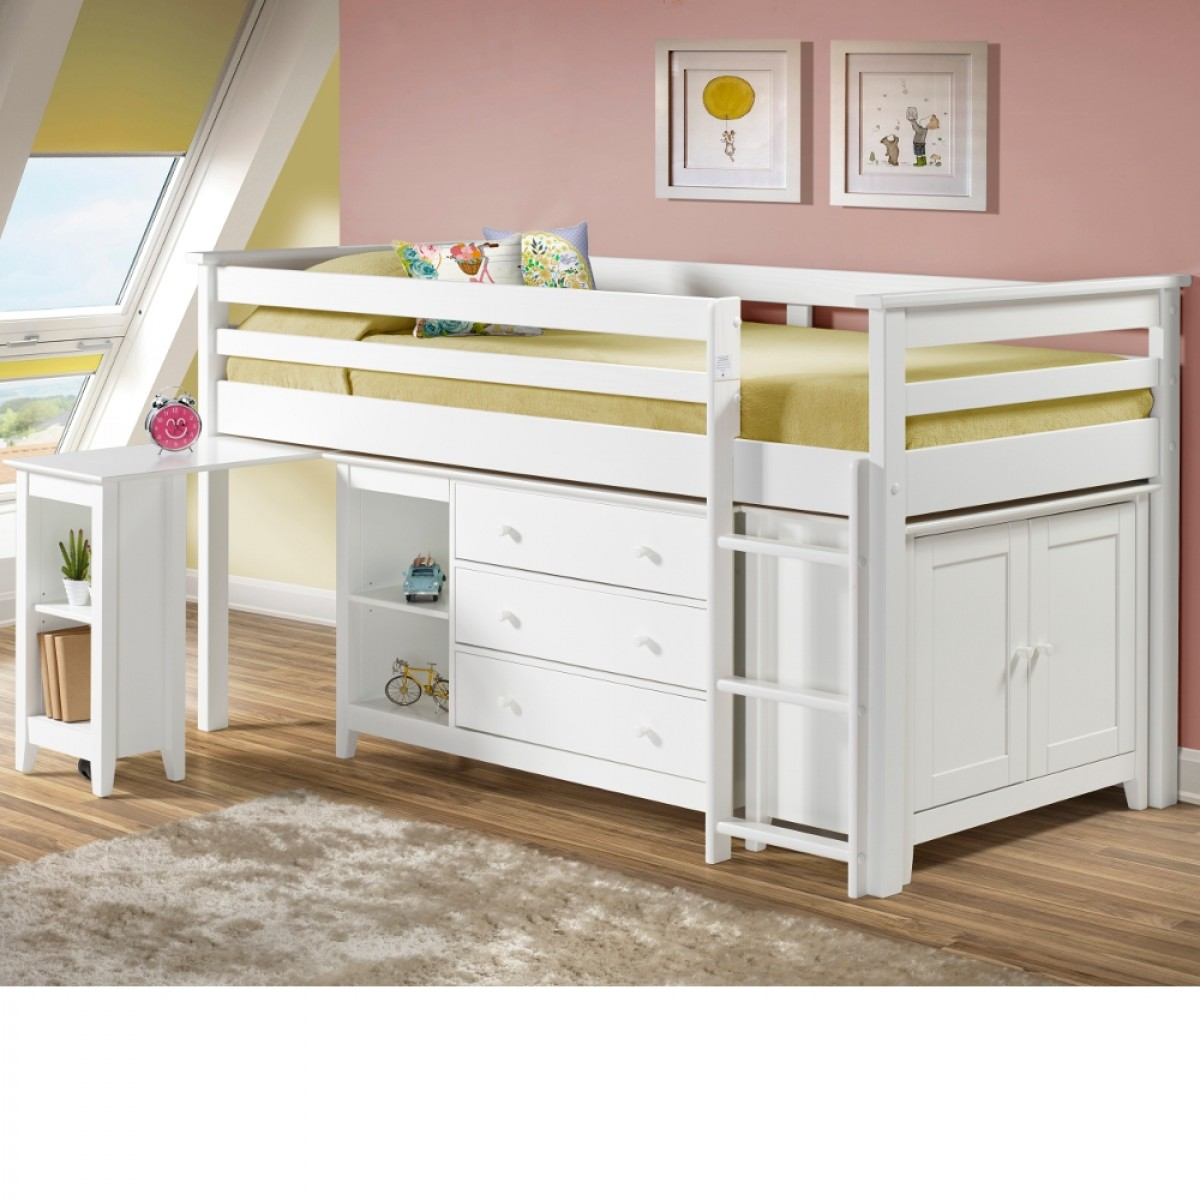 Cotswold White Finish Solid Pine Wooden Kids Mid Sleeper Sleep Station Desk Cabin Storage Bed  sc 1 st  Happy Beds & Cotswold White Finish Solid Pine Wooden Kids Mid Sleeper Sleep ...